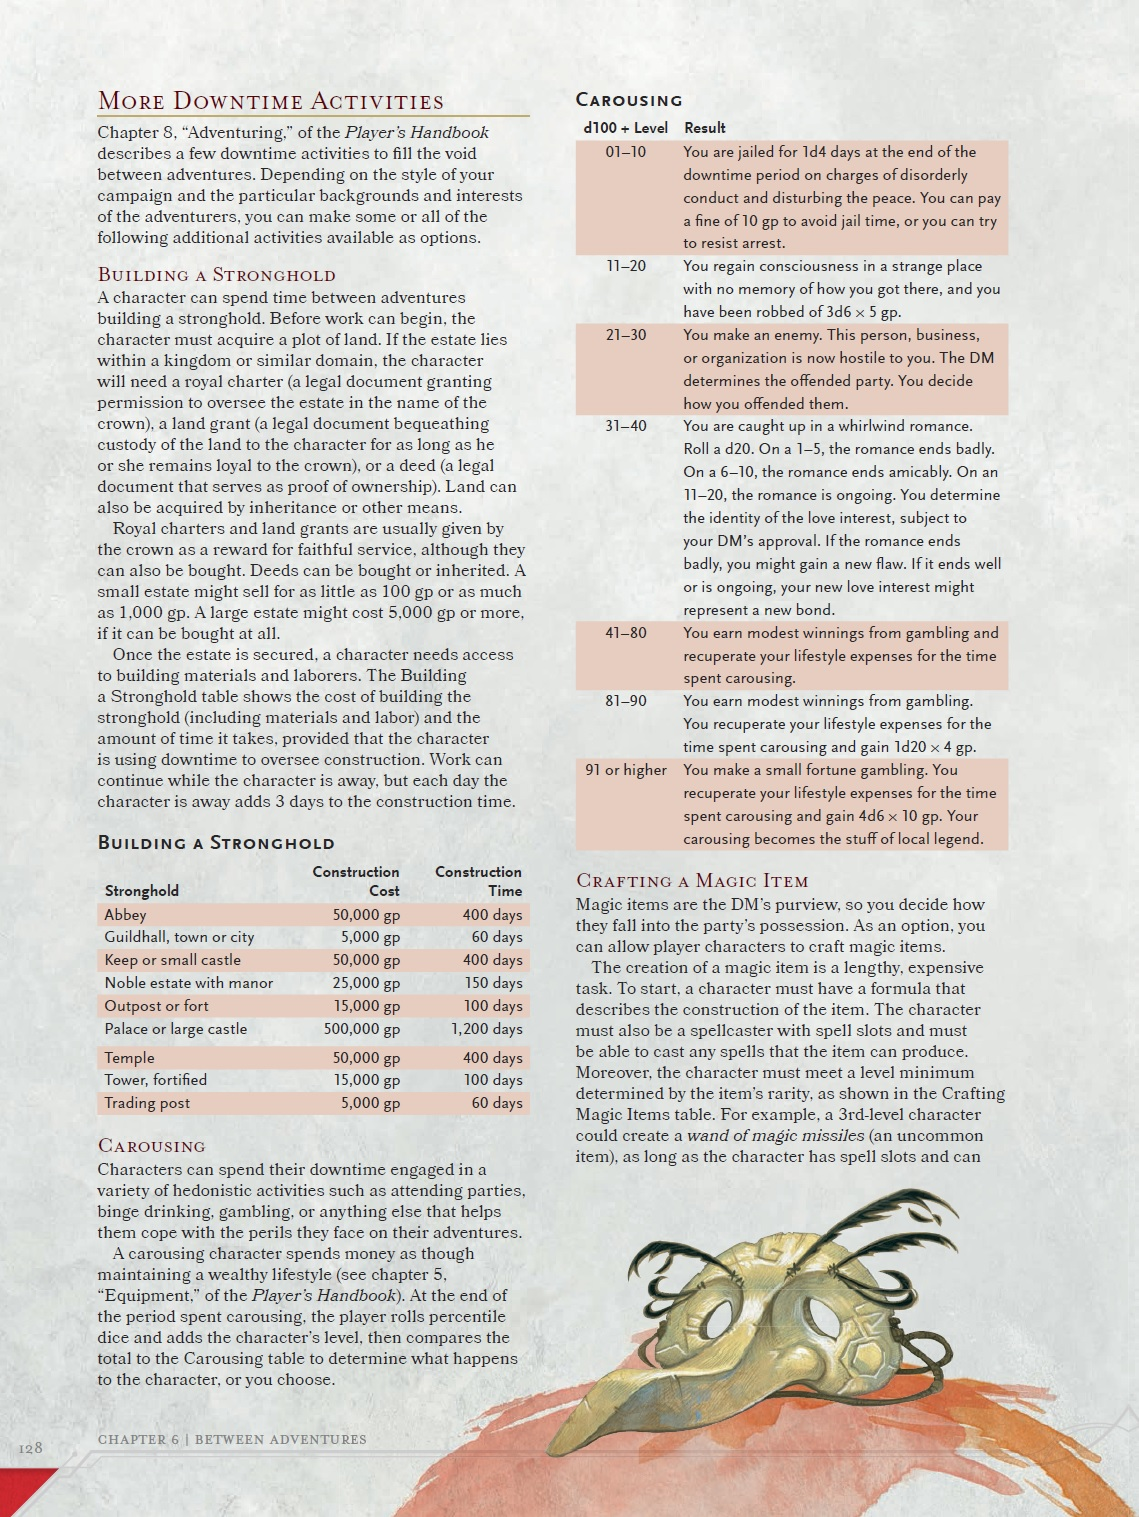 DUNGEON MASTER'S GUIDE Excerpt: Downtime Activities!